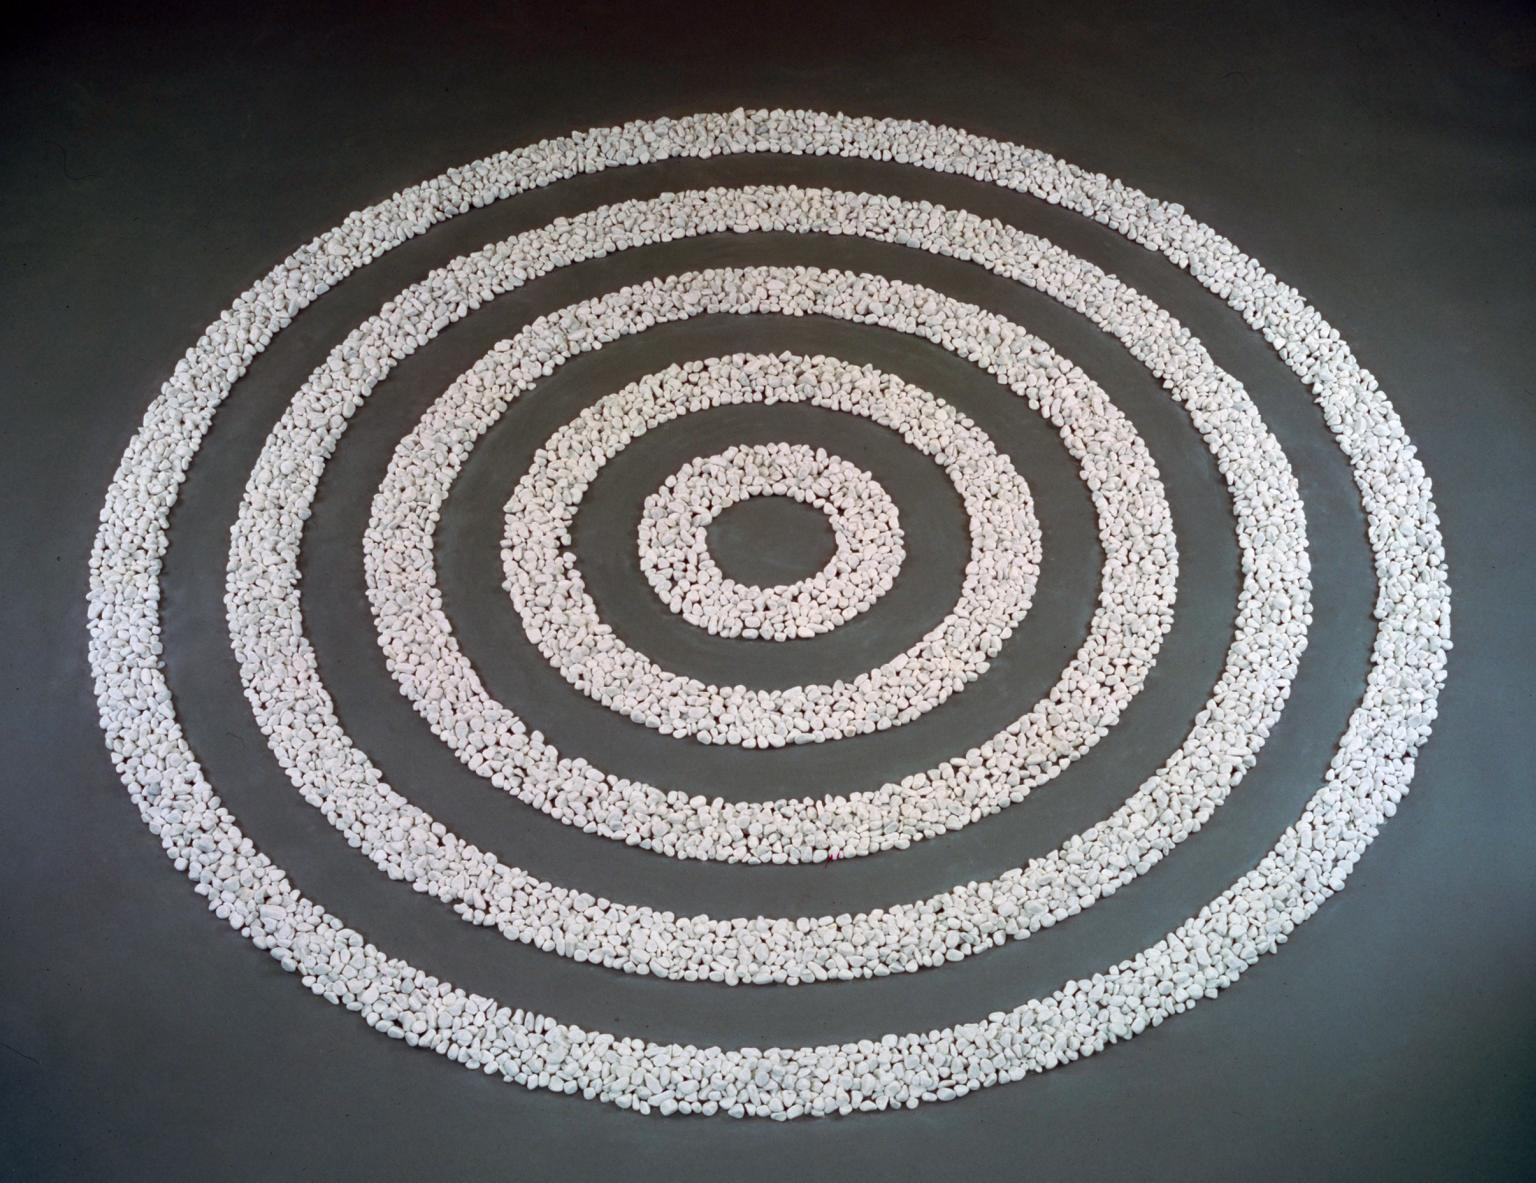 Small White Pebble Circles By Richard Long, Tate Modern